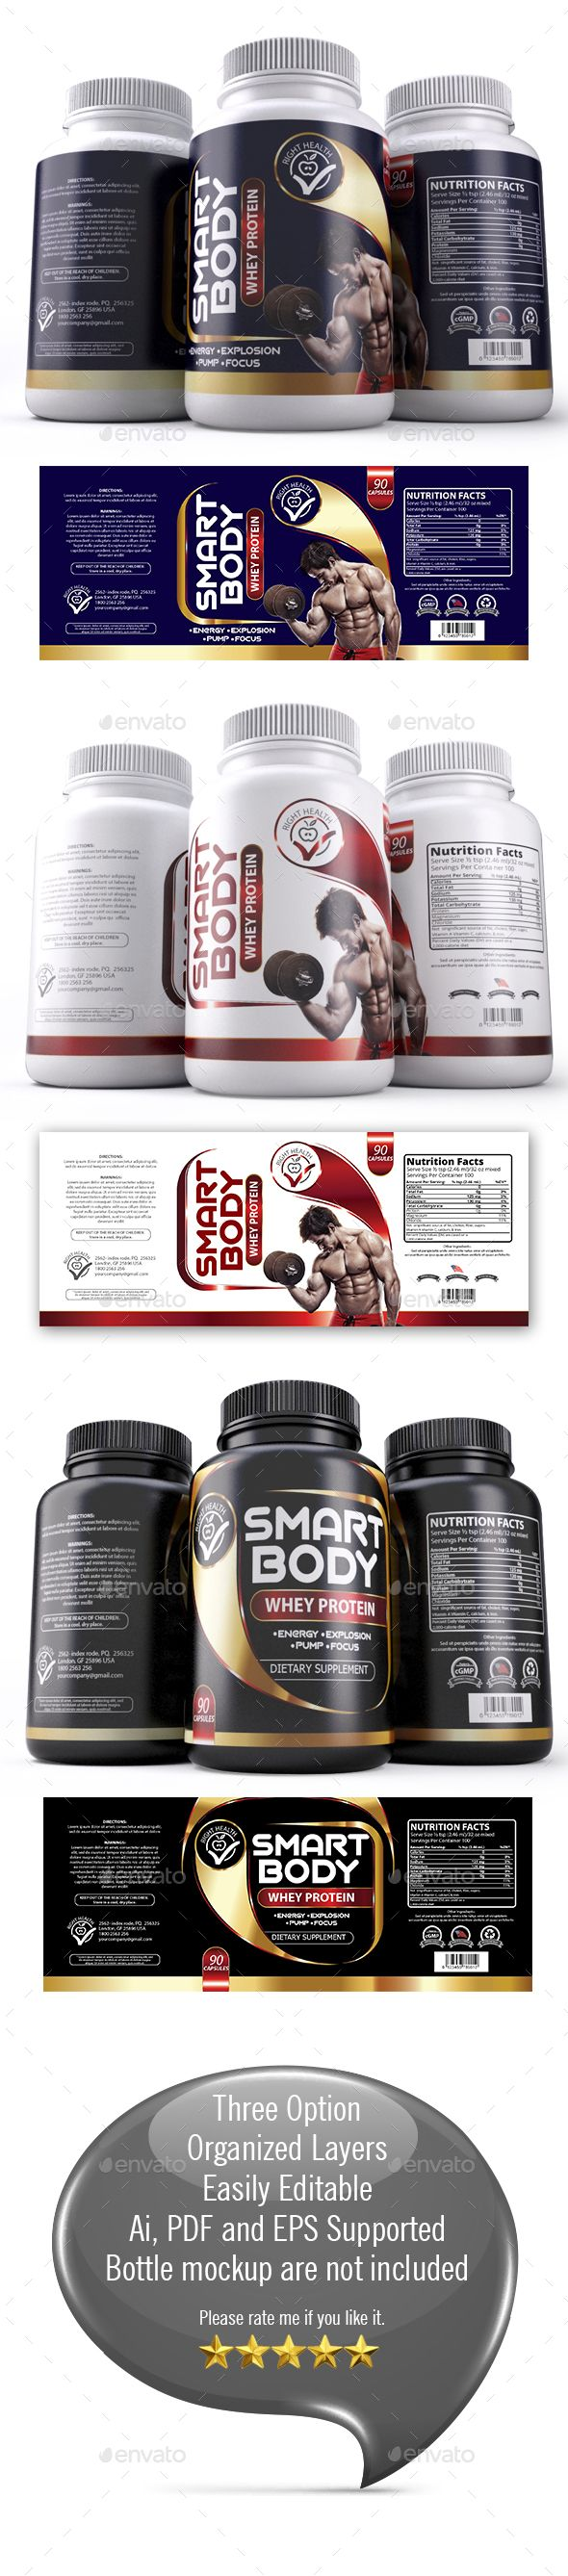 Supplement Label Template (003)